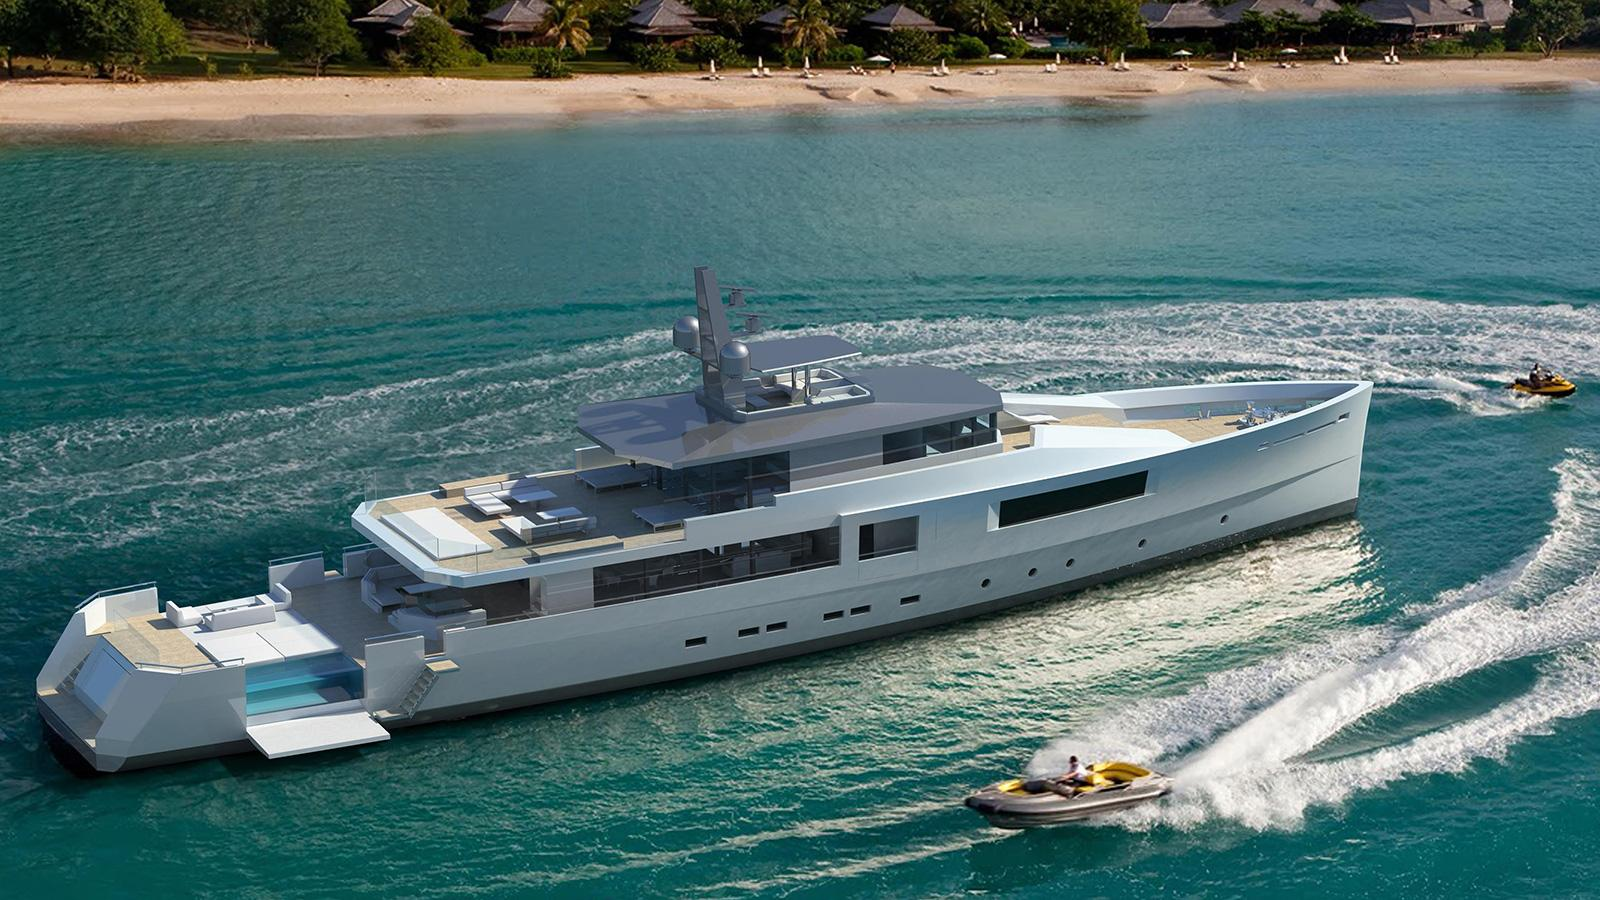 Expedition style motor yacht thread? - Sailing Anarchy - Sailing